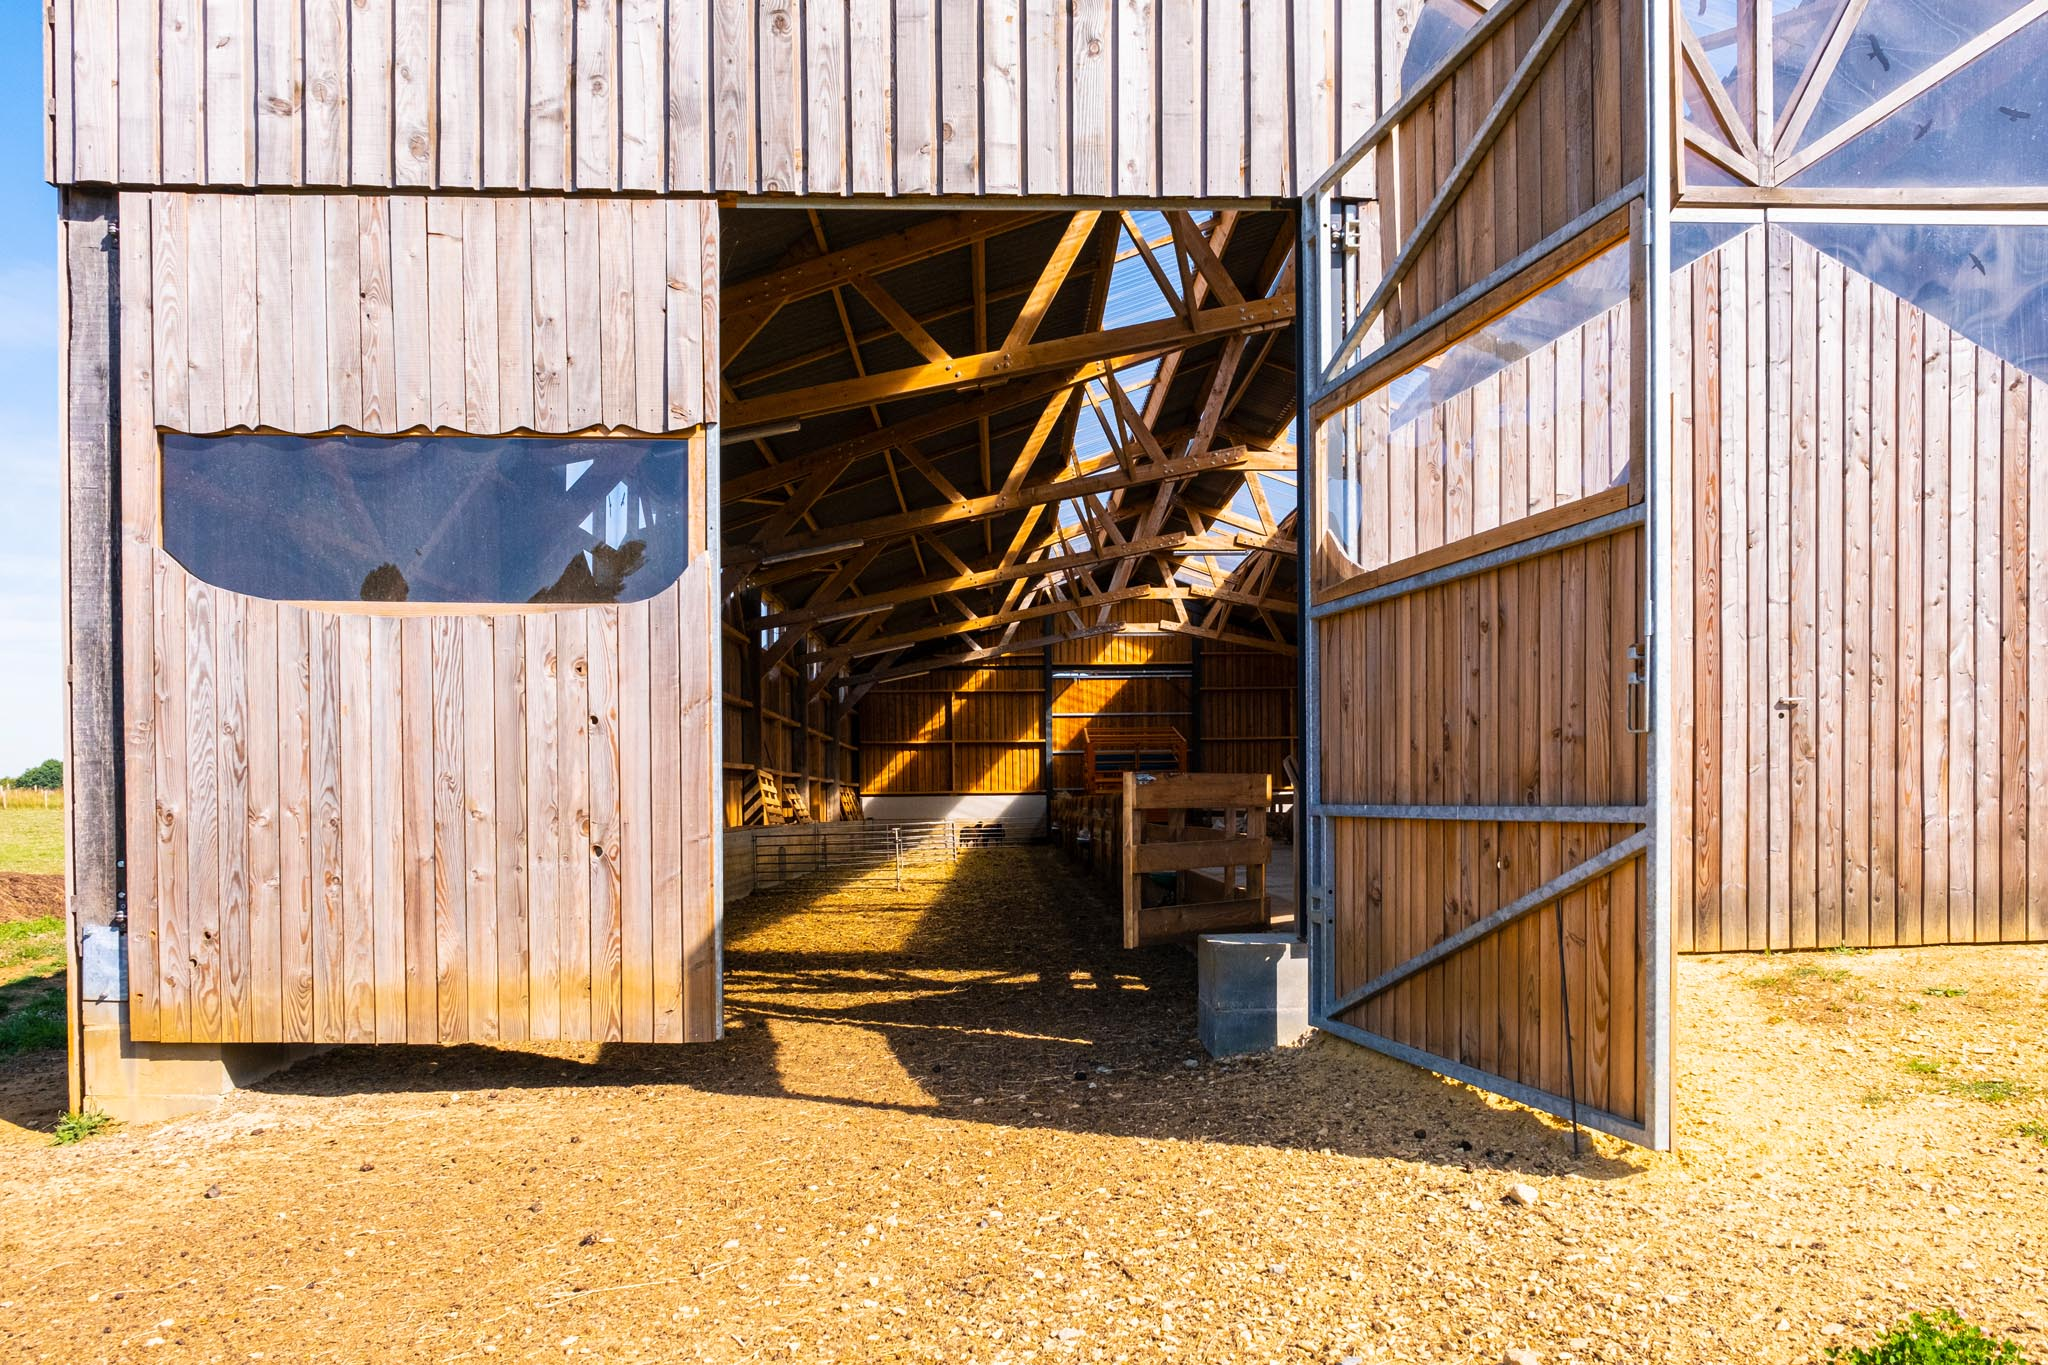 Agrinew_DSF3249_007